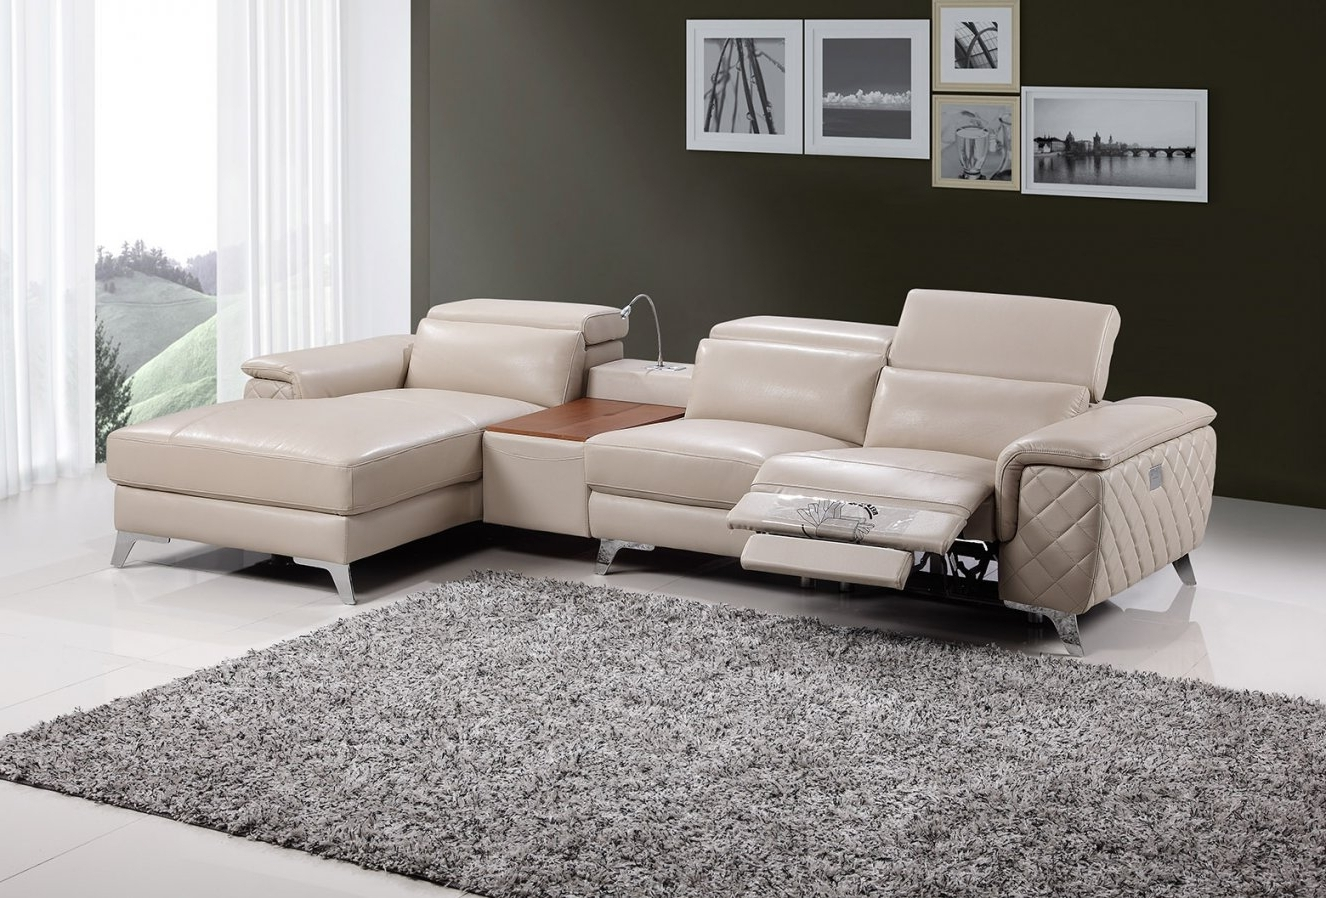 Chaise Lounge Recliners Pertaining To Current Chaise Lounge Sofa With Recliner (View 2 of 15)